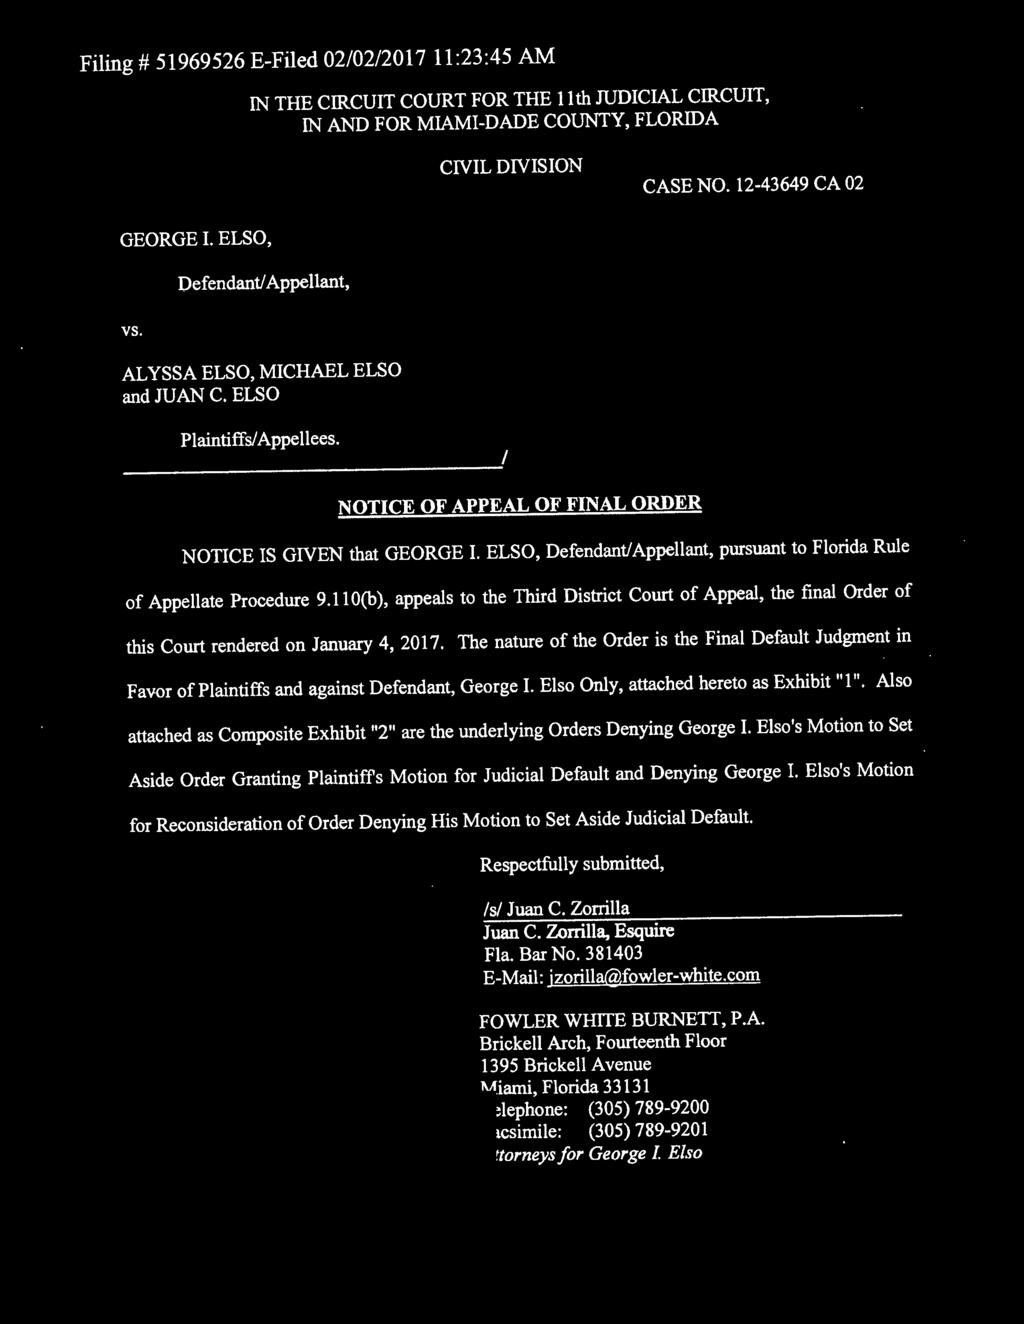 NOTICE OF APPEAL OF FINAL ORDER NOTICE IS GIVEN that GEORGE I. ELSO, Defendant/ Appellant, pursuant to Florida Rule of Appellate Procedure 9.